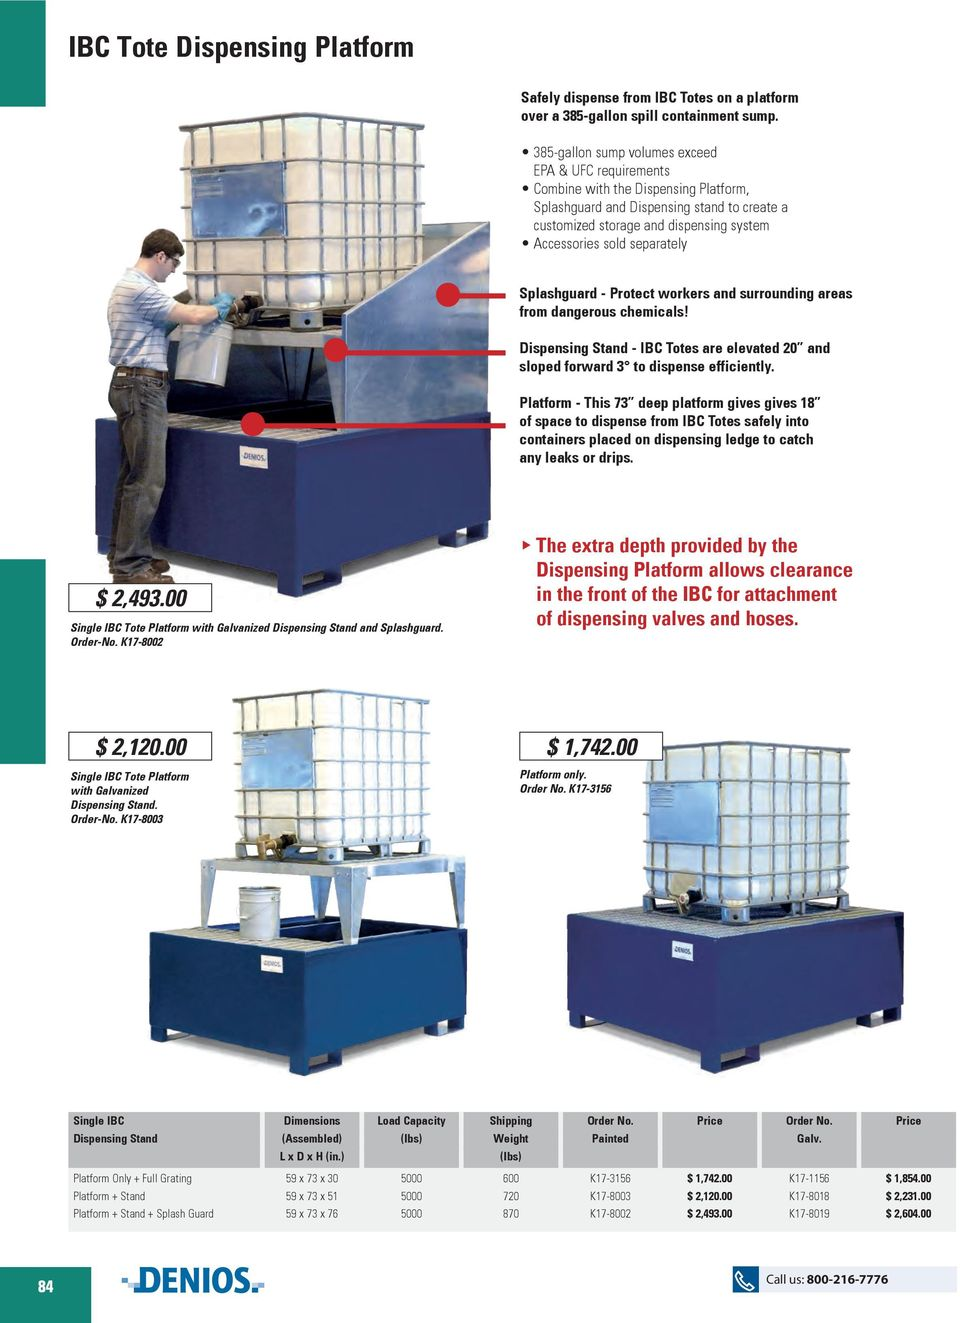 separately Splashguard - Protect workers and surrounding areas from dangerous chemicals! Dispensing Stand - IBC Totes are elevated 20 and sloped forward 3 to dispense efficiently.